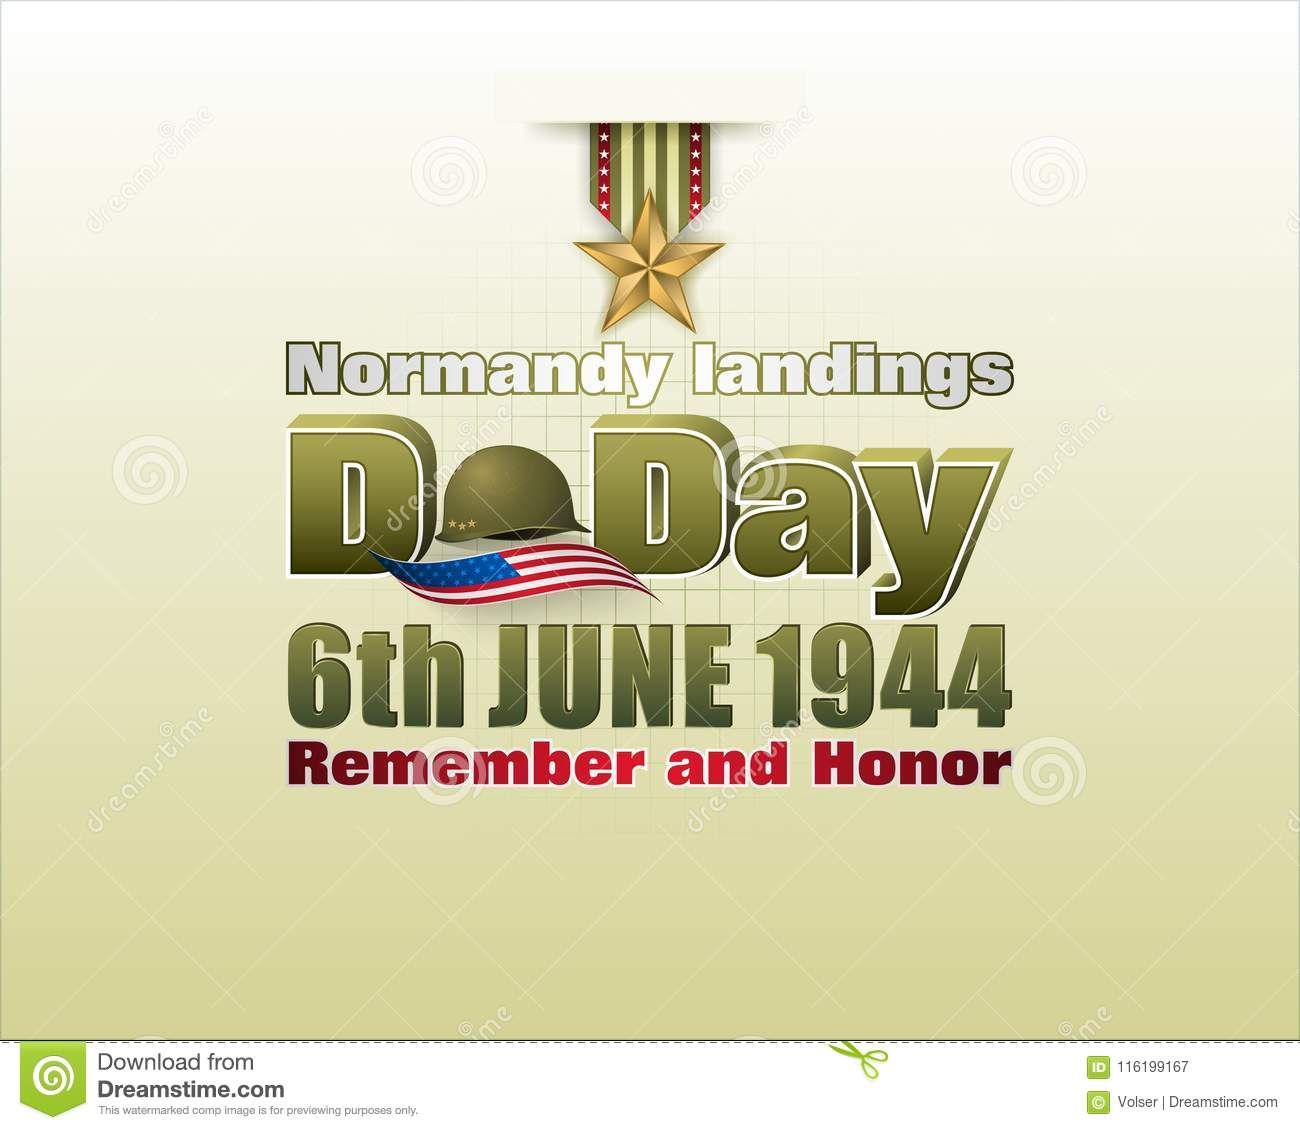 Normandy landings, American D Day, celebration